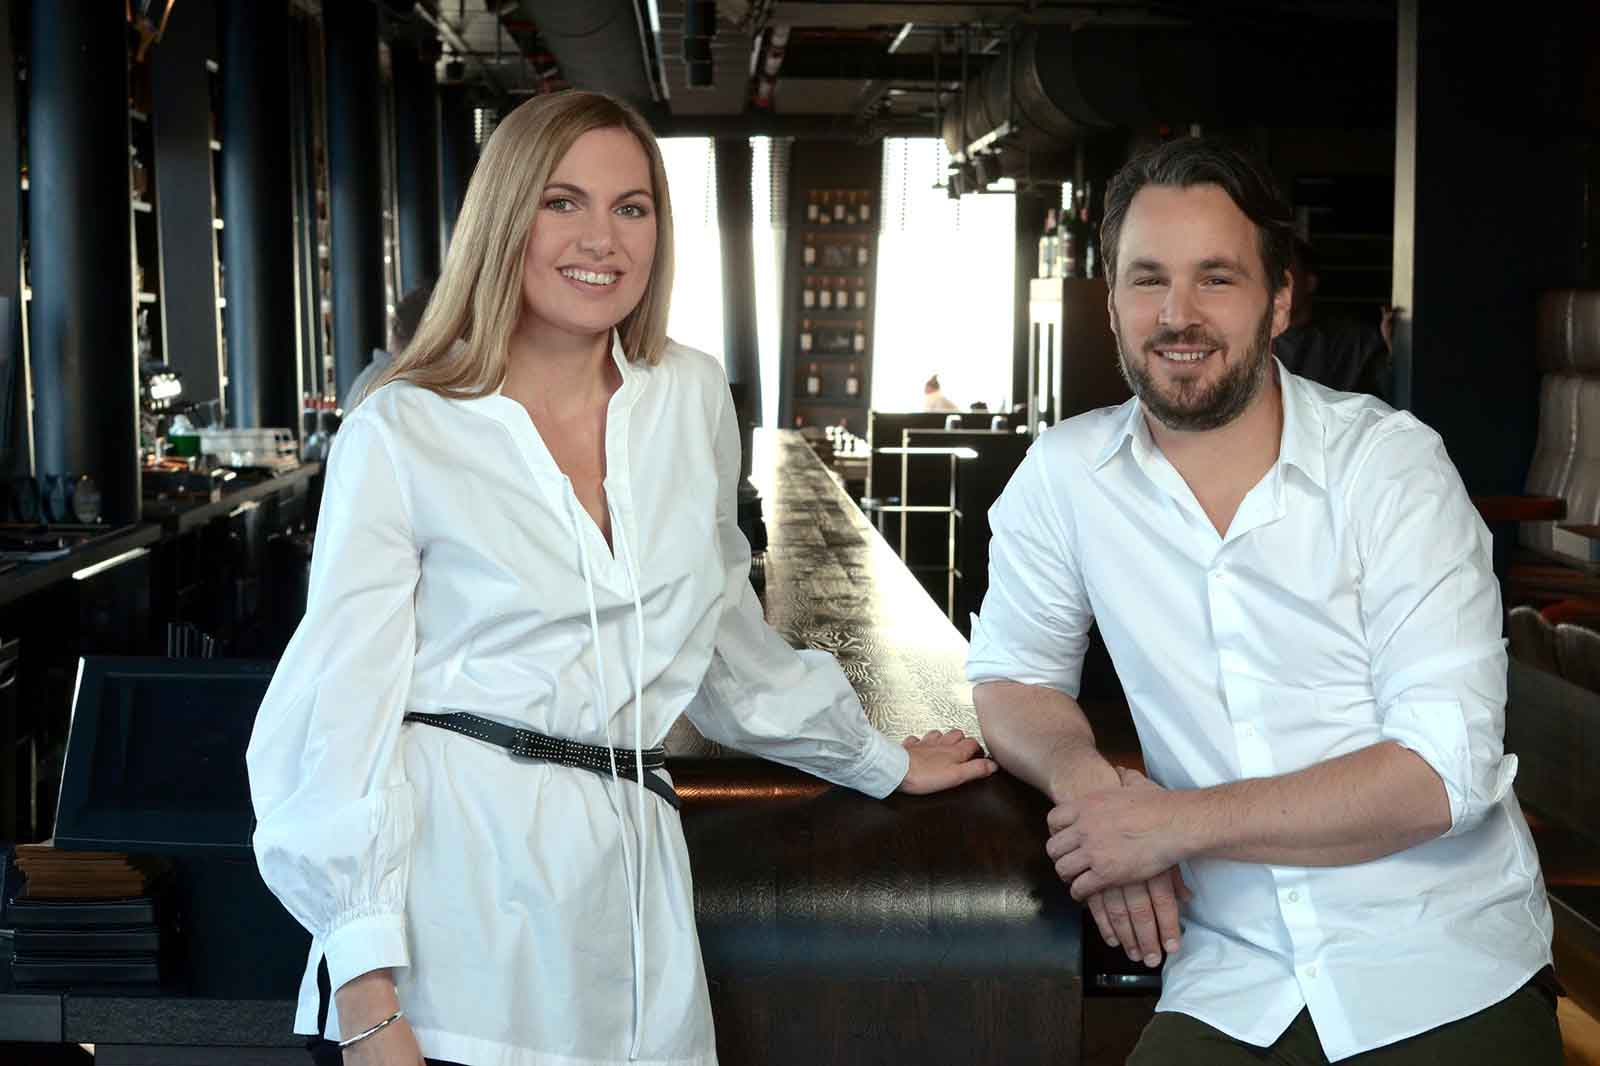 Amberlair Crowdsourced Crowdfunded Boutique Hotel - About Marcus Orbe and Kristin Lindenberg, founder of Amberlair